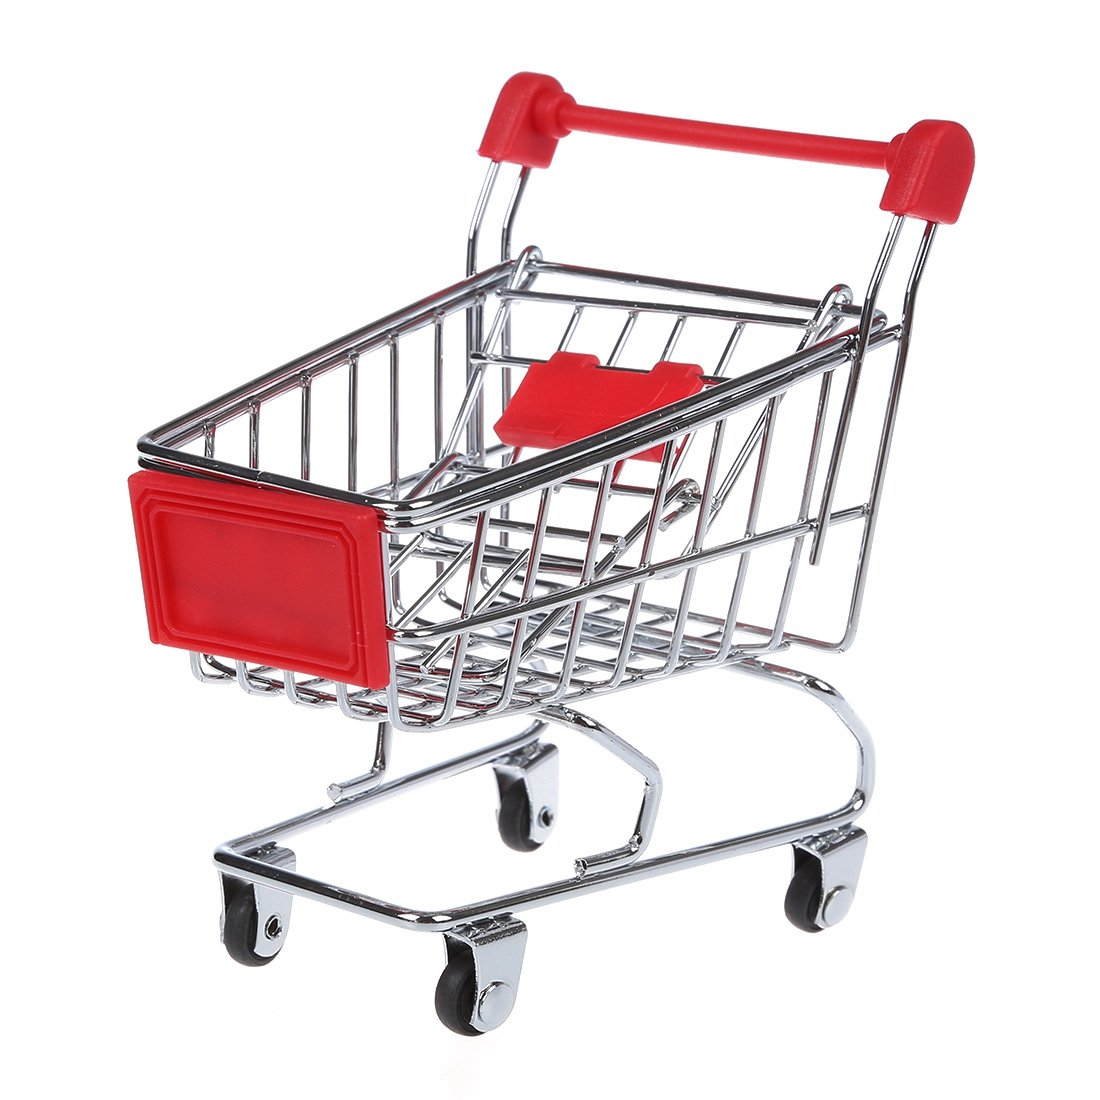 Amazon.com: TOOGOO Mini Supermarket trolley Pen Holder Childrens Toys (Red): Cell Phones & Accessories